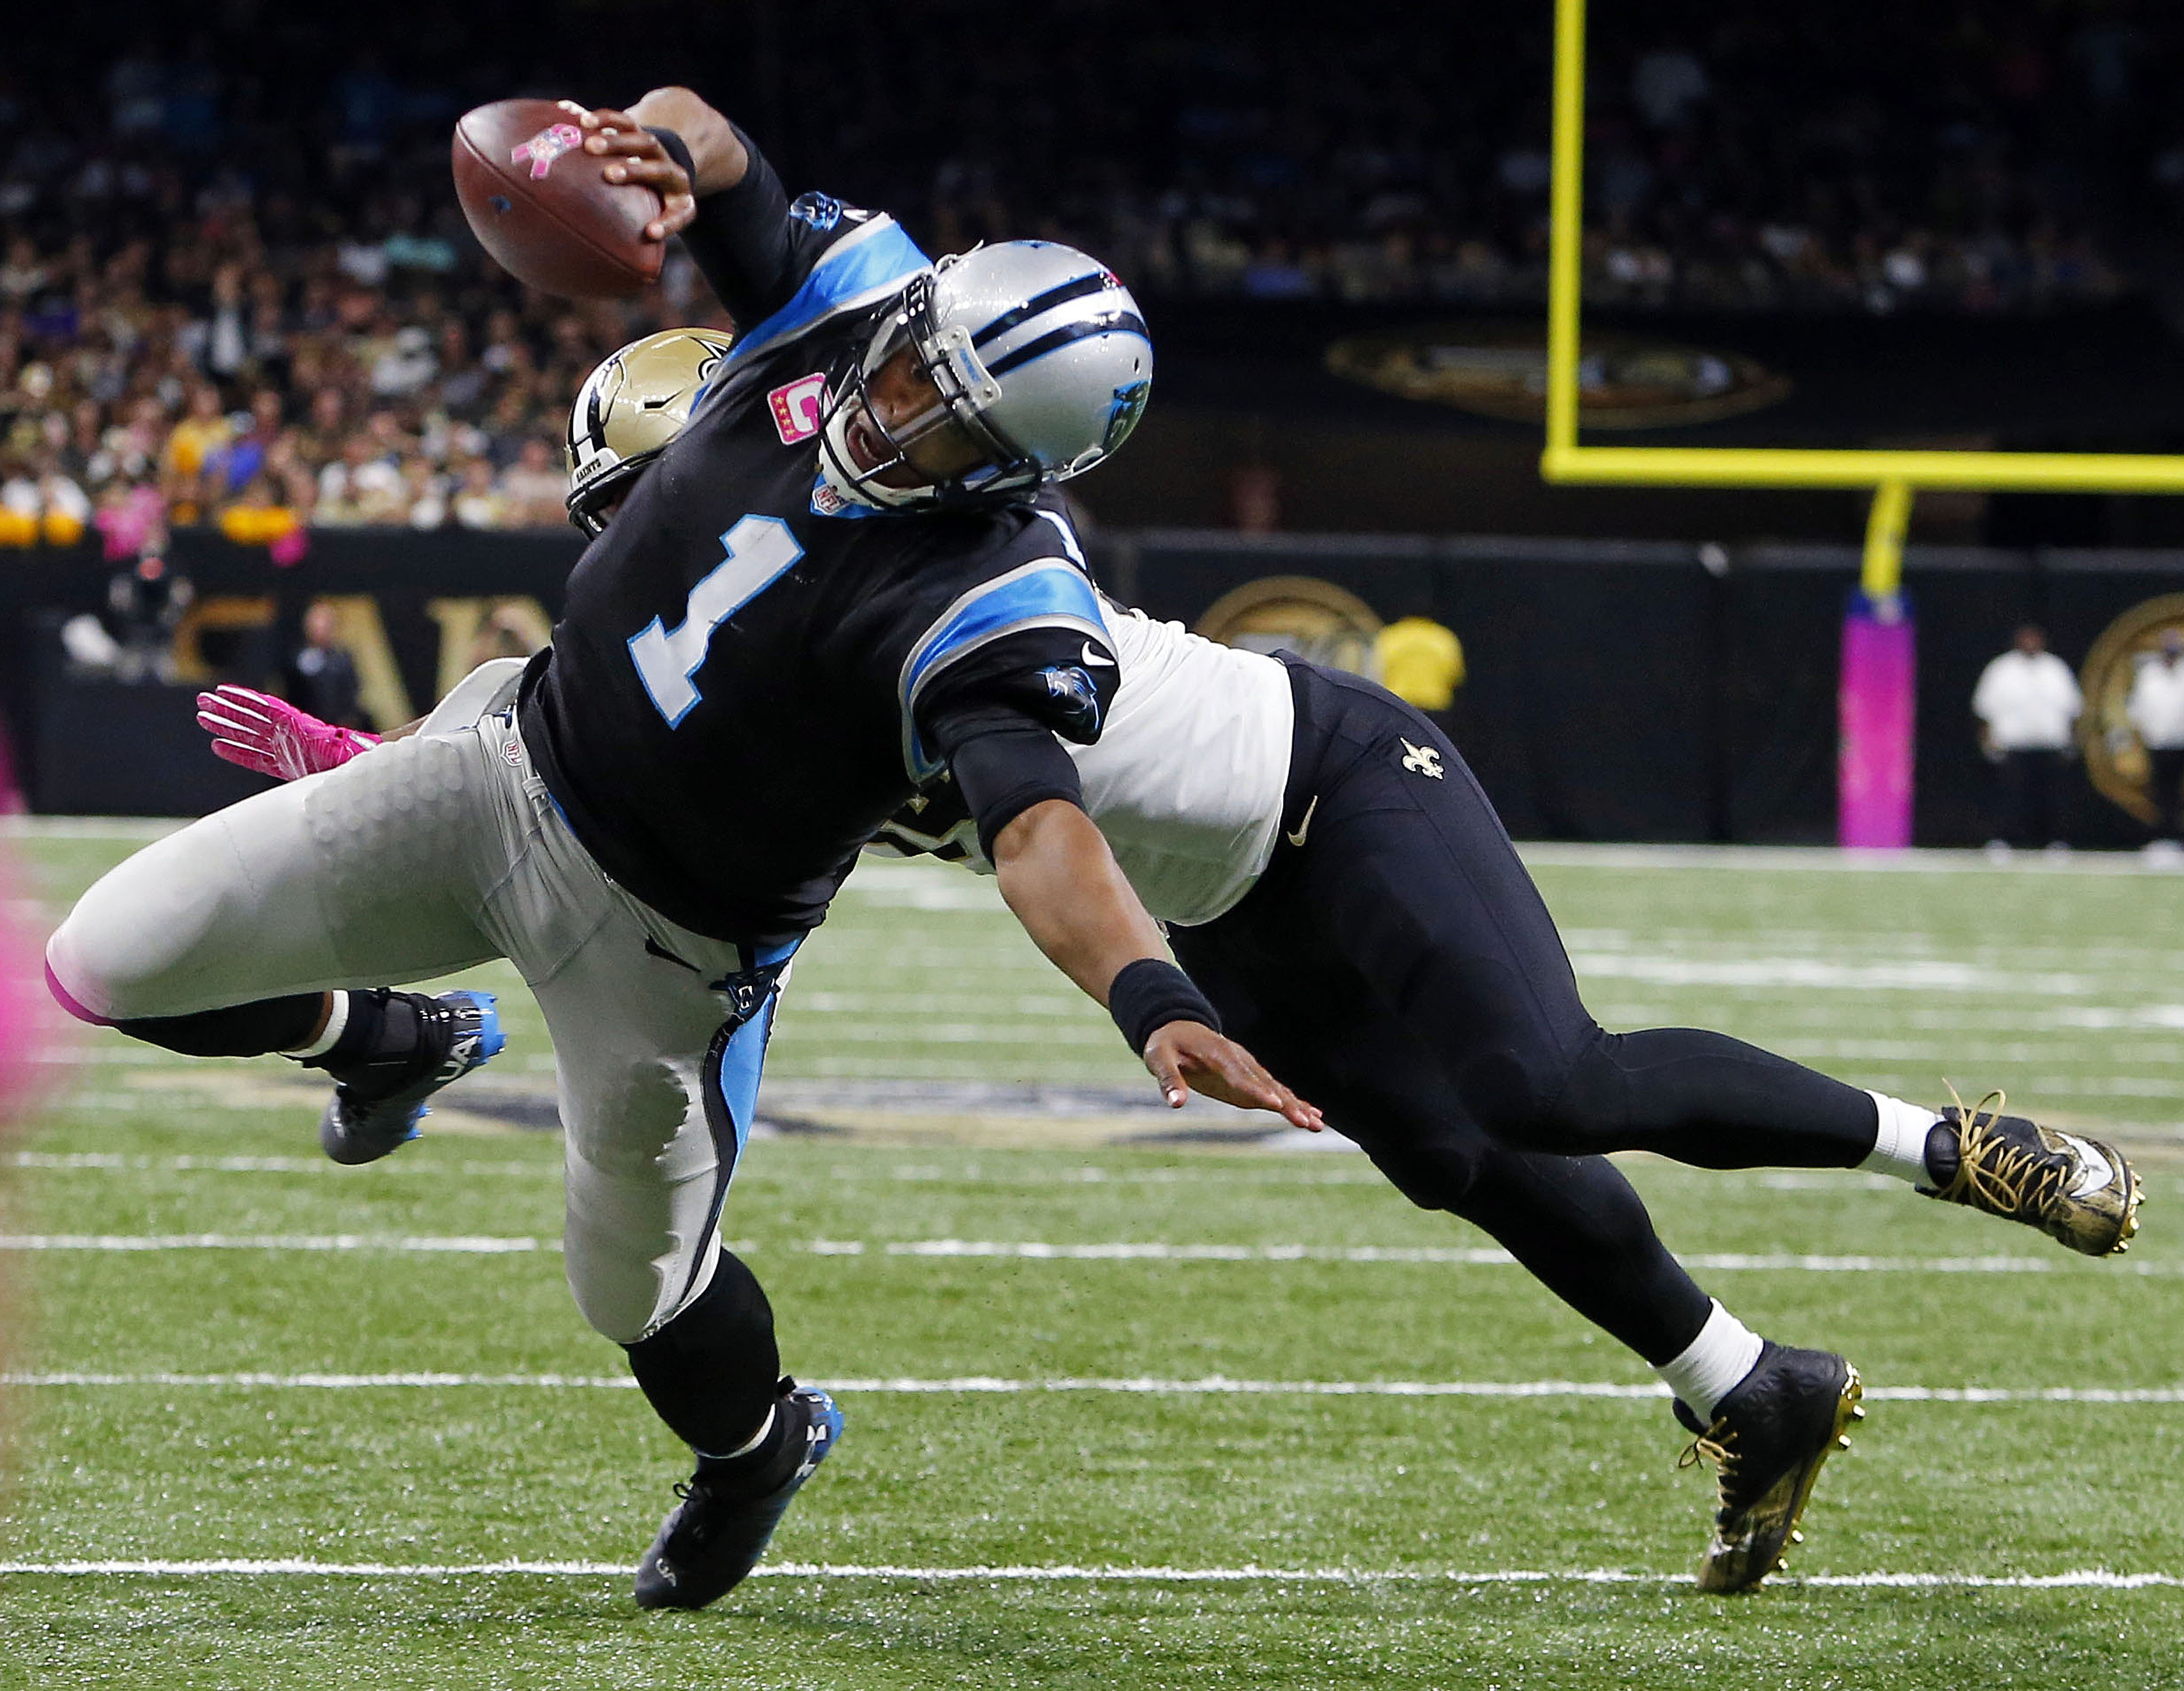 Carolina Panthers quarterback Cam Newton (1) dives for a touchdown in the second half of an NFL football game against the New Orleans Saints in New Orleans, Sunday, Oct. 16, 2016. (AP Photo/Butch Dill)